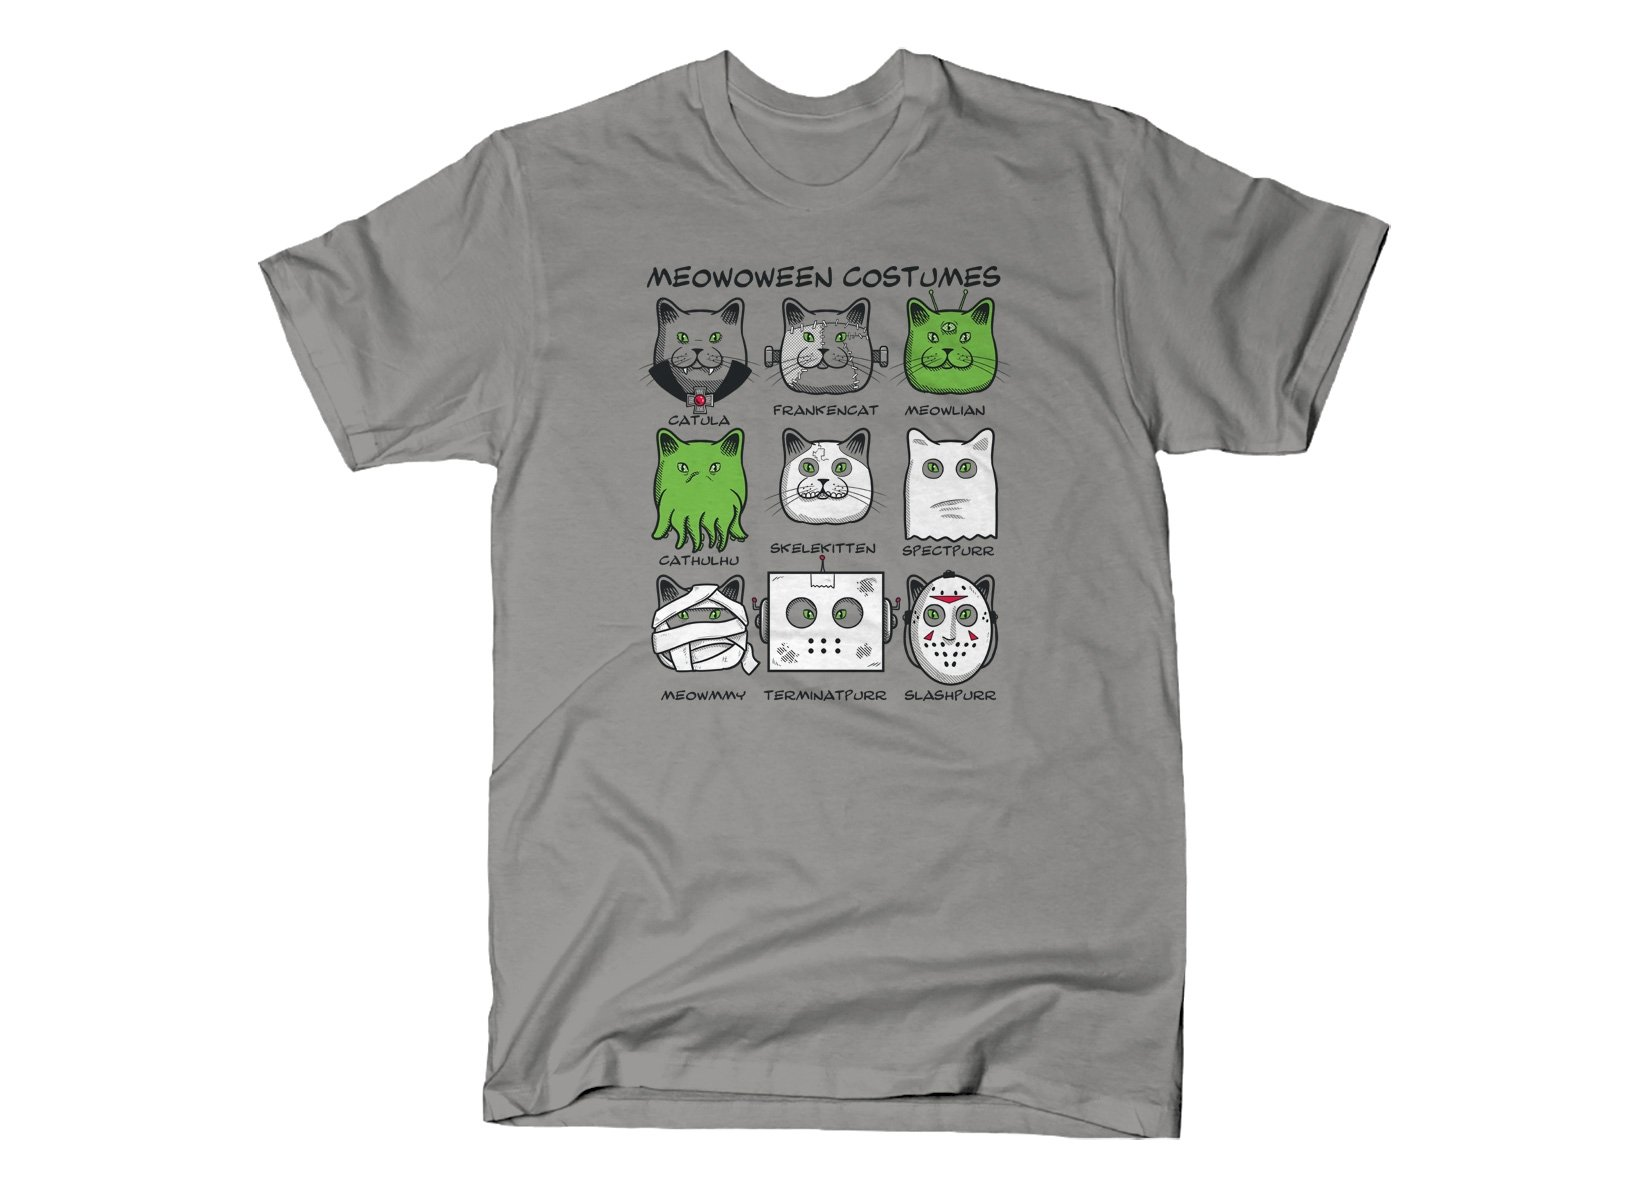 Meowoween Costumes on Mens T-Shirt